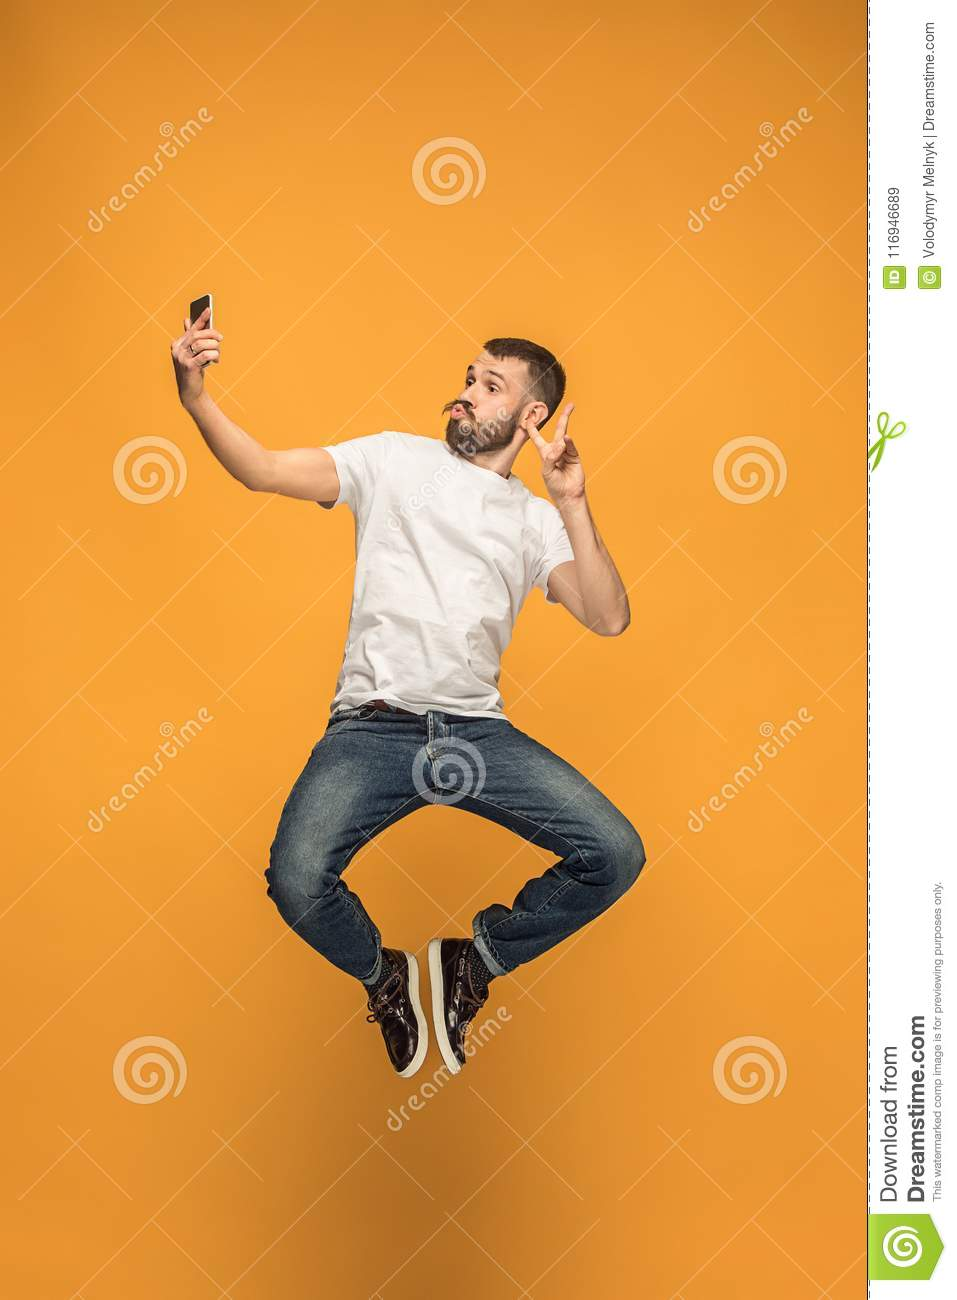 Time to take selfie. Full length of handsome young man taking selfie while jumping